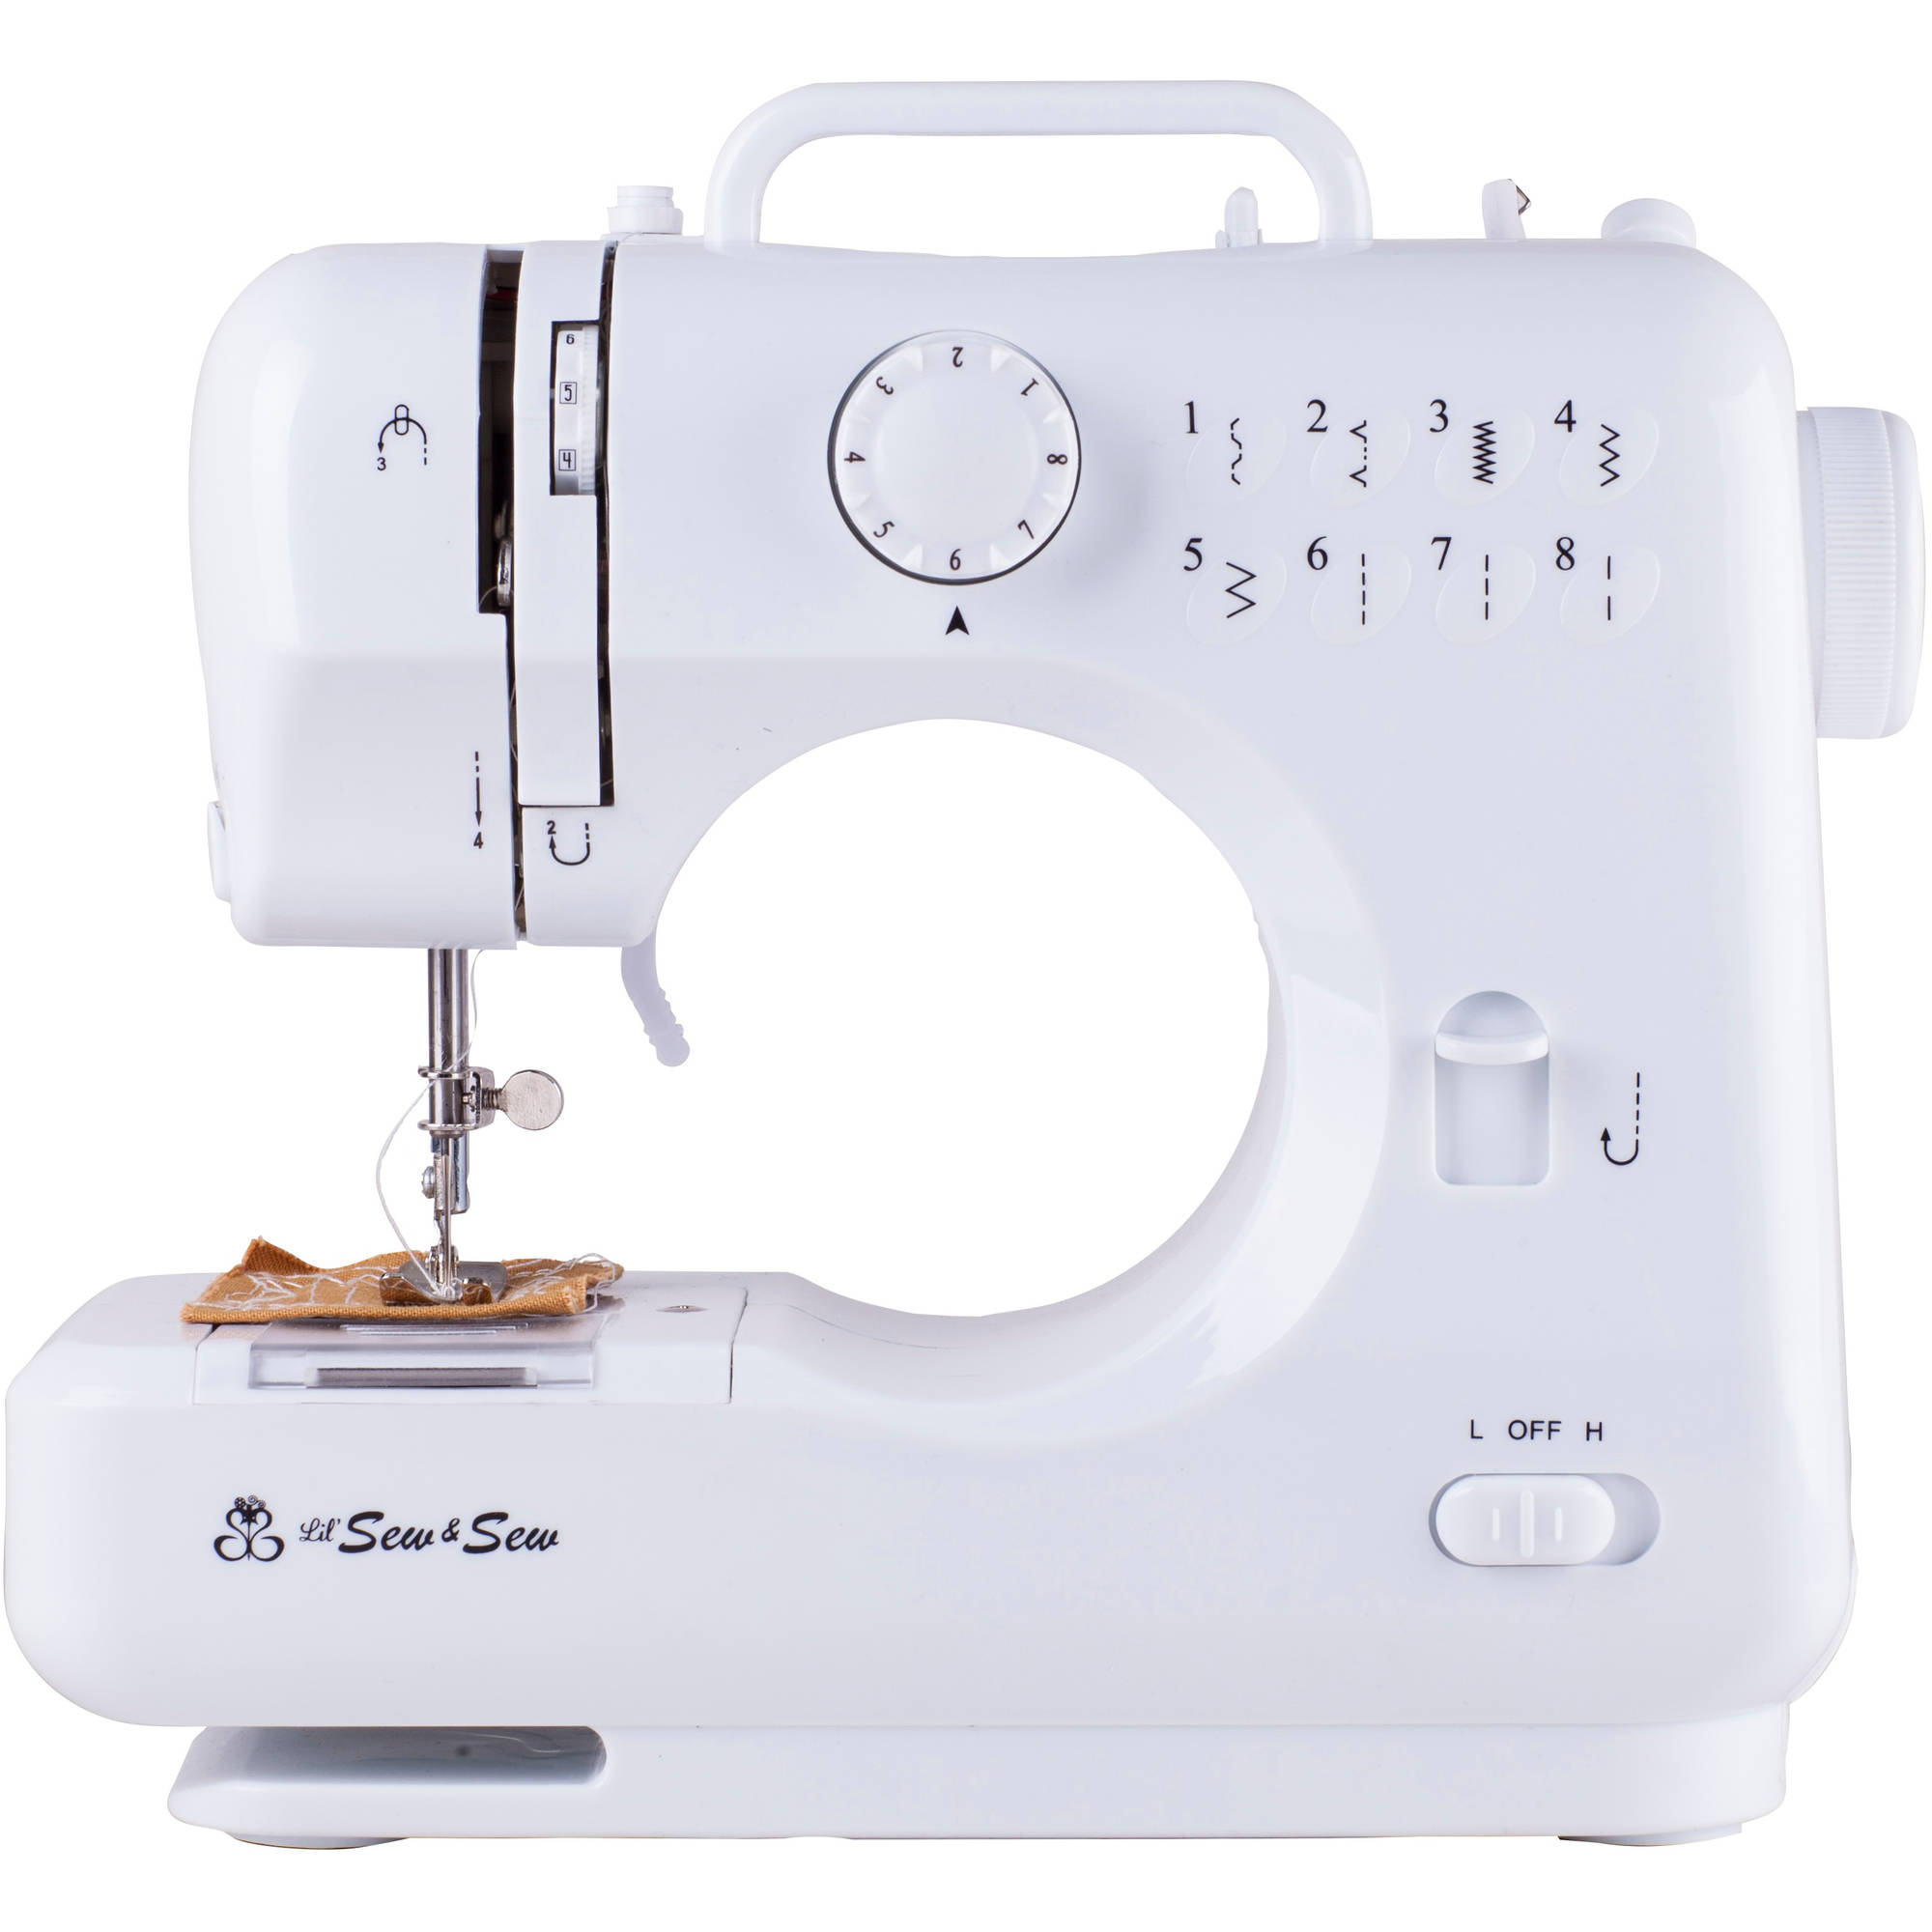 Michley 8-Stitch Desktop Sewing Machine